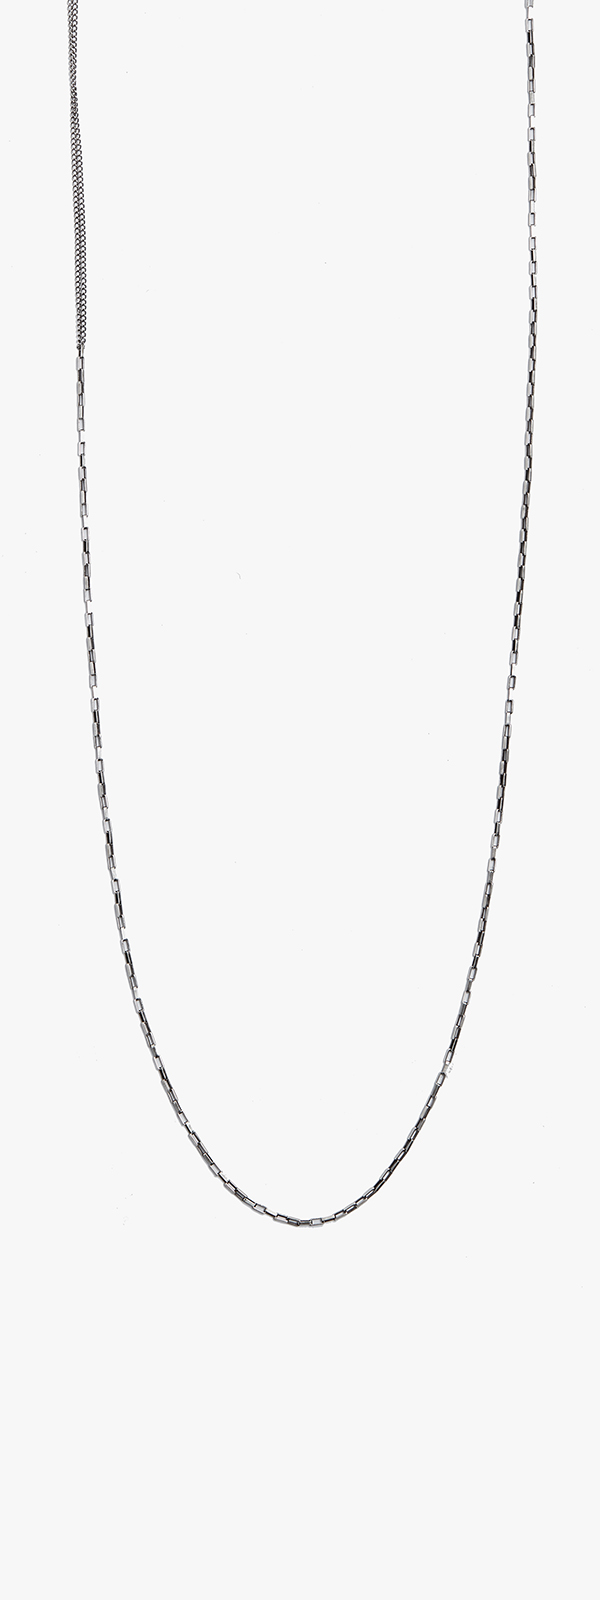 Image of Mixed Chain Necklace 057